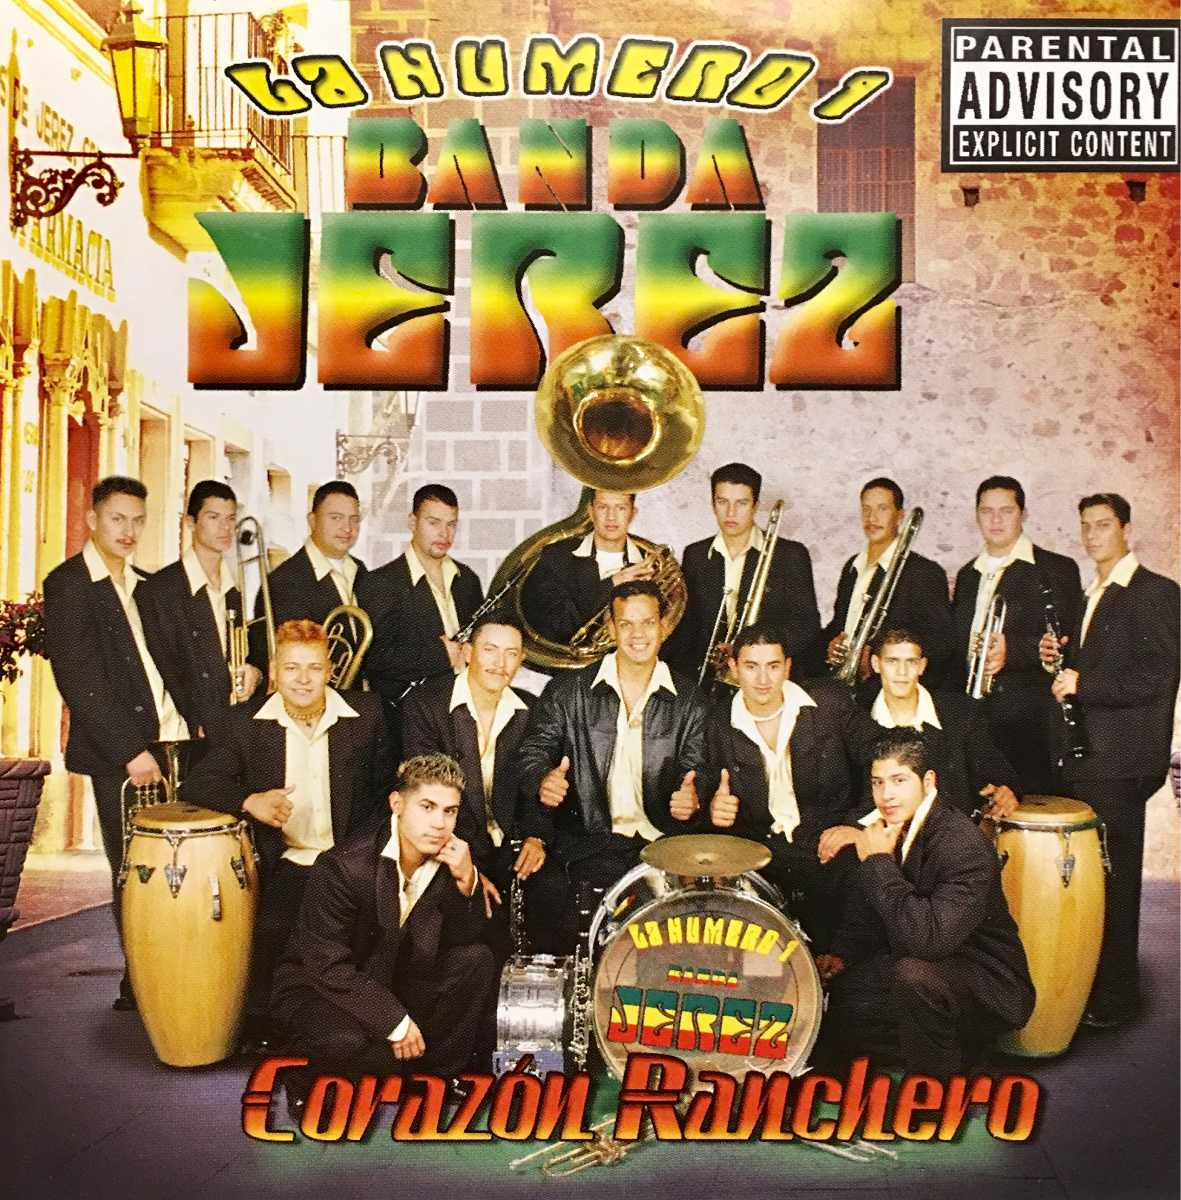 Cd Banda Jerez Corazon Ranchero